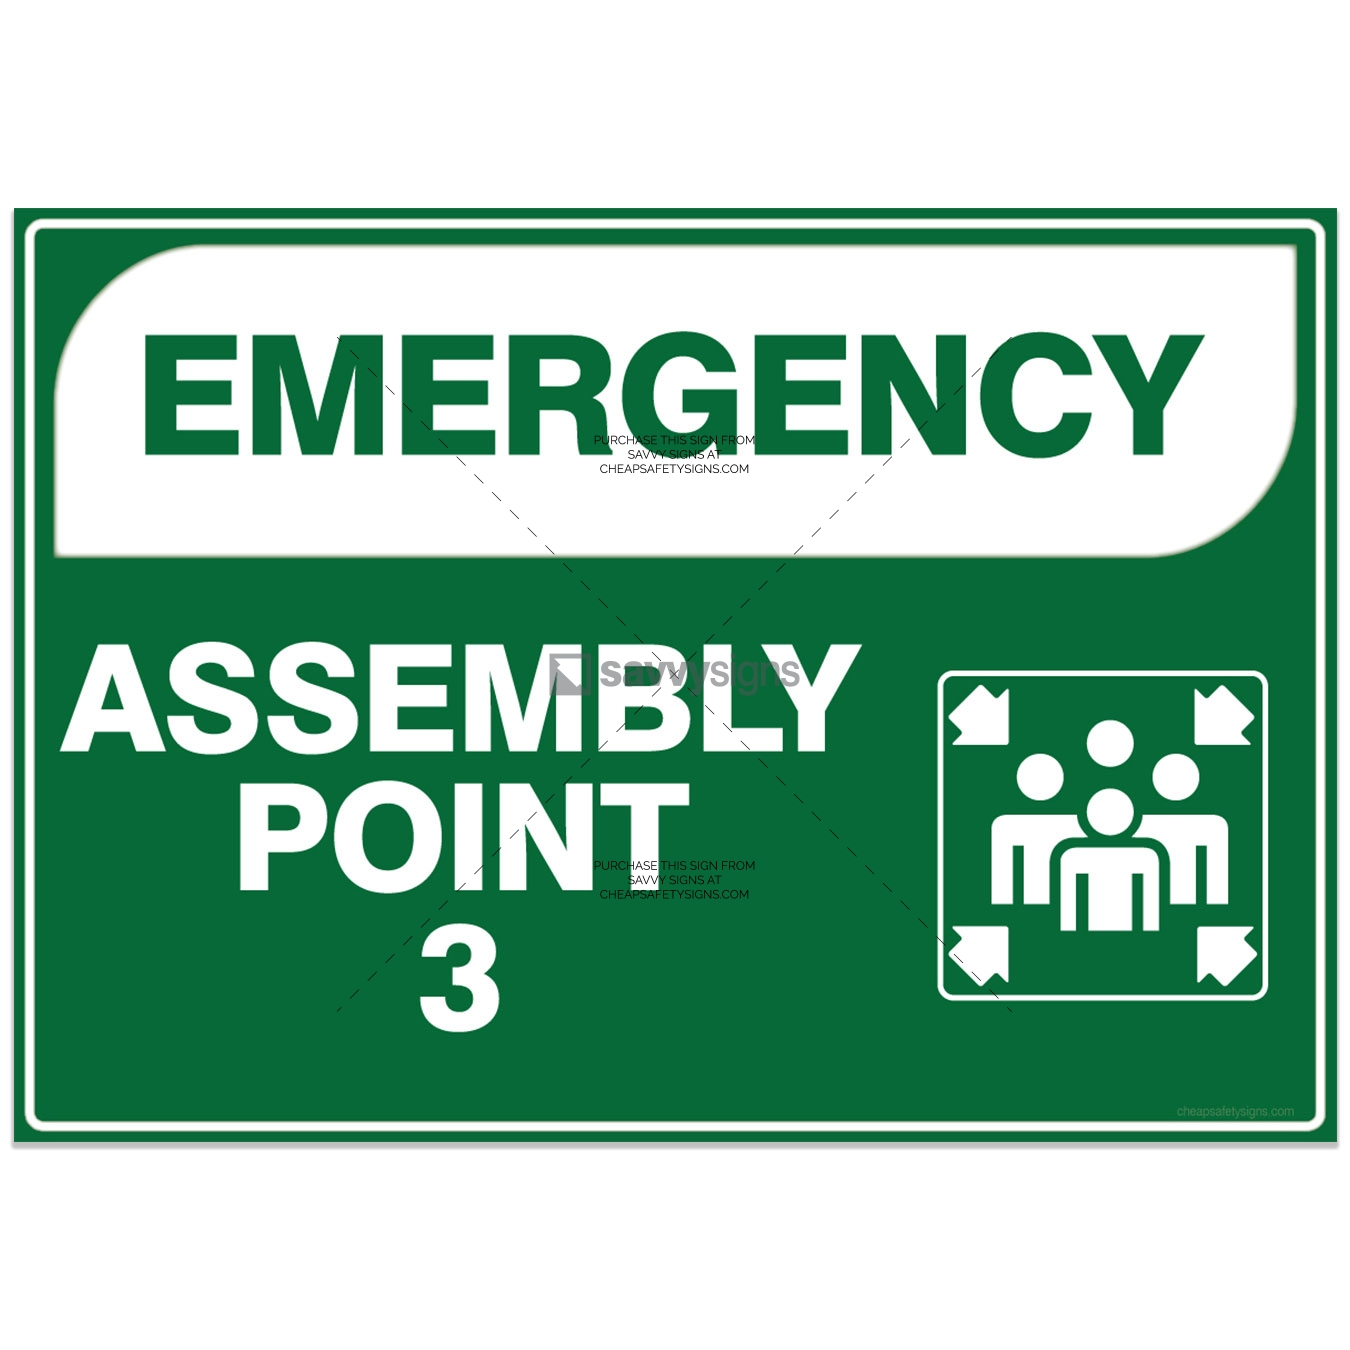 SSEME3005-EMERGENCY-Workplace-Safety-Signs_Savvy-Signs_v3